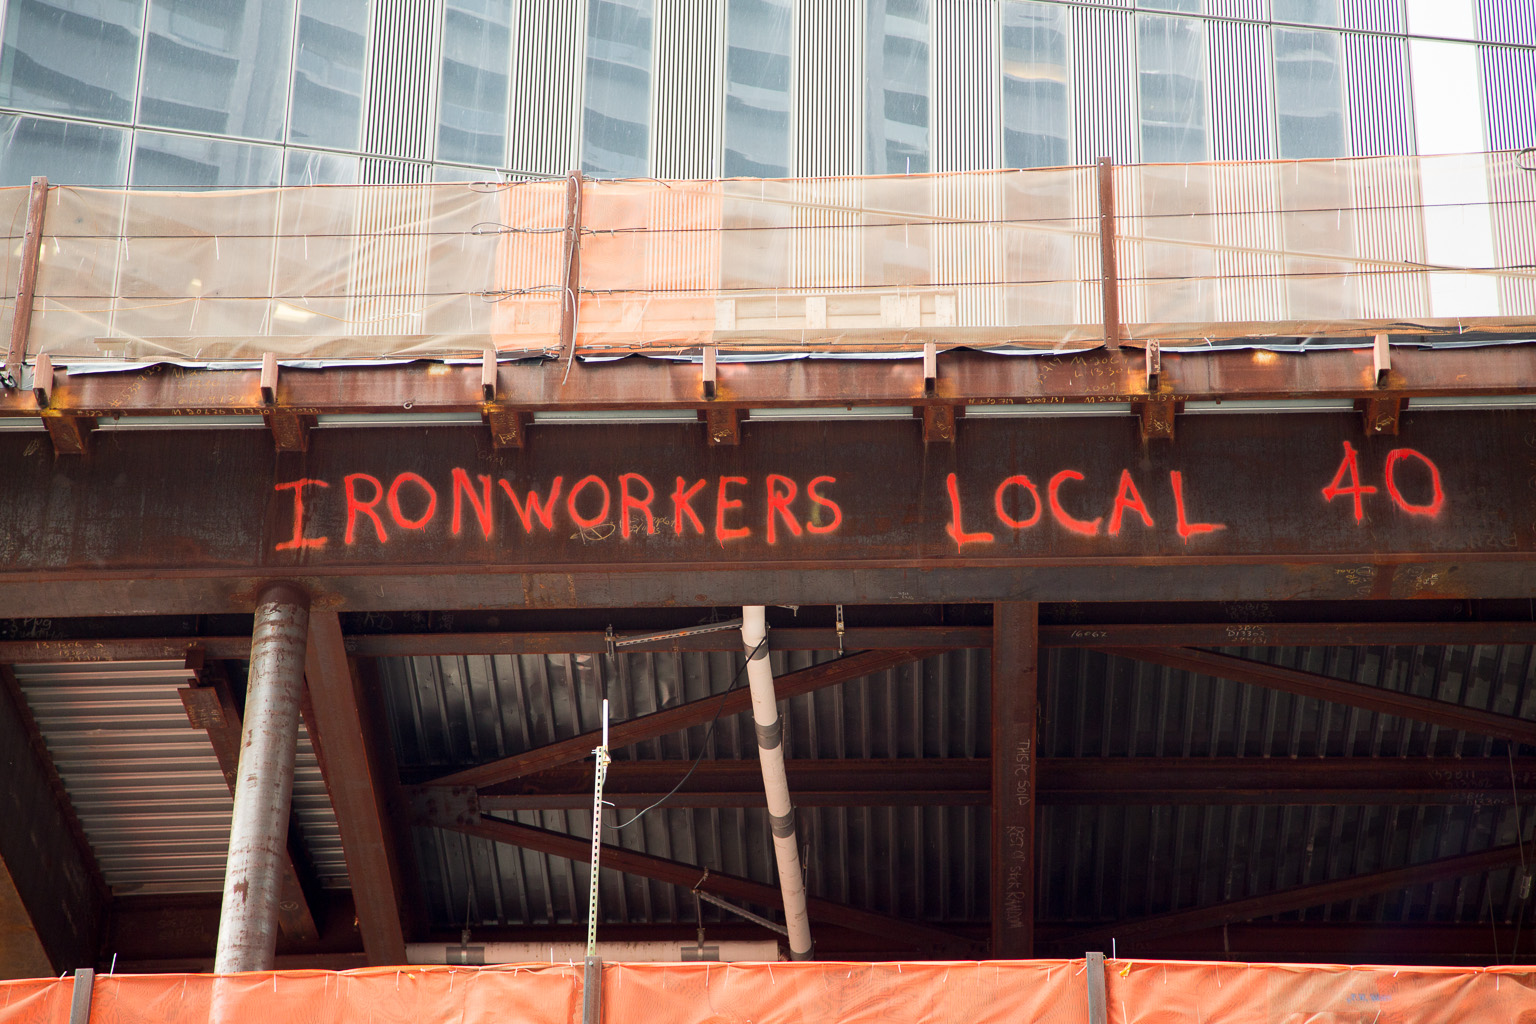 Near Ground Zero – Ironworkers Local 40